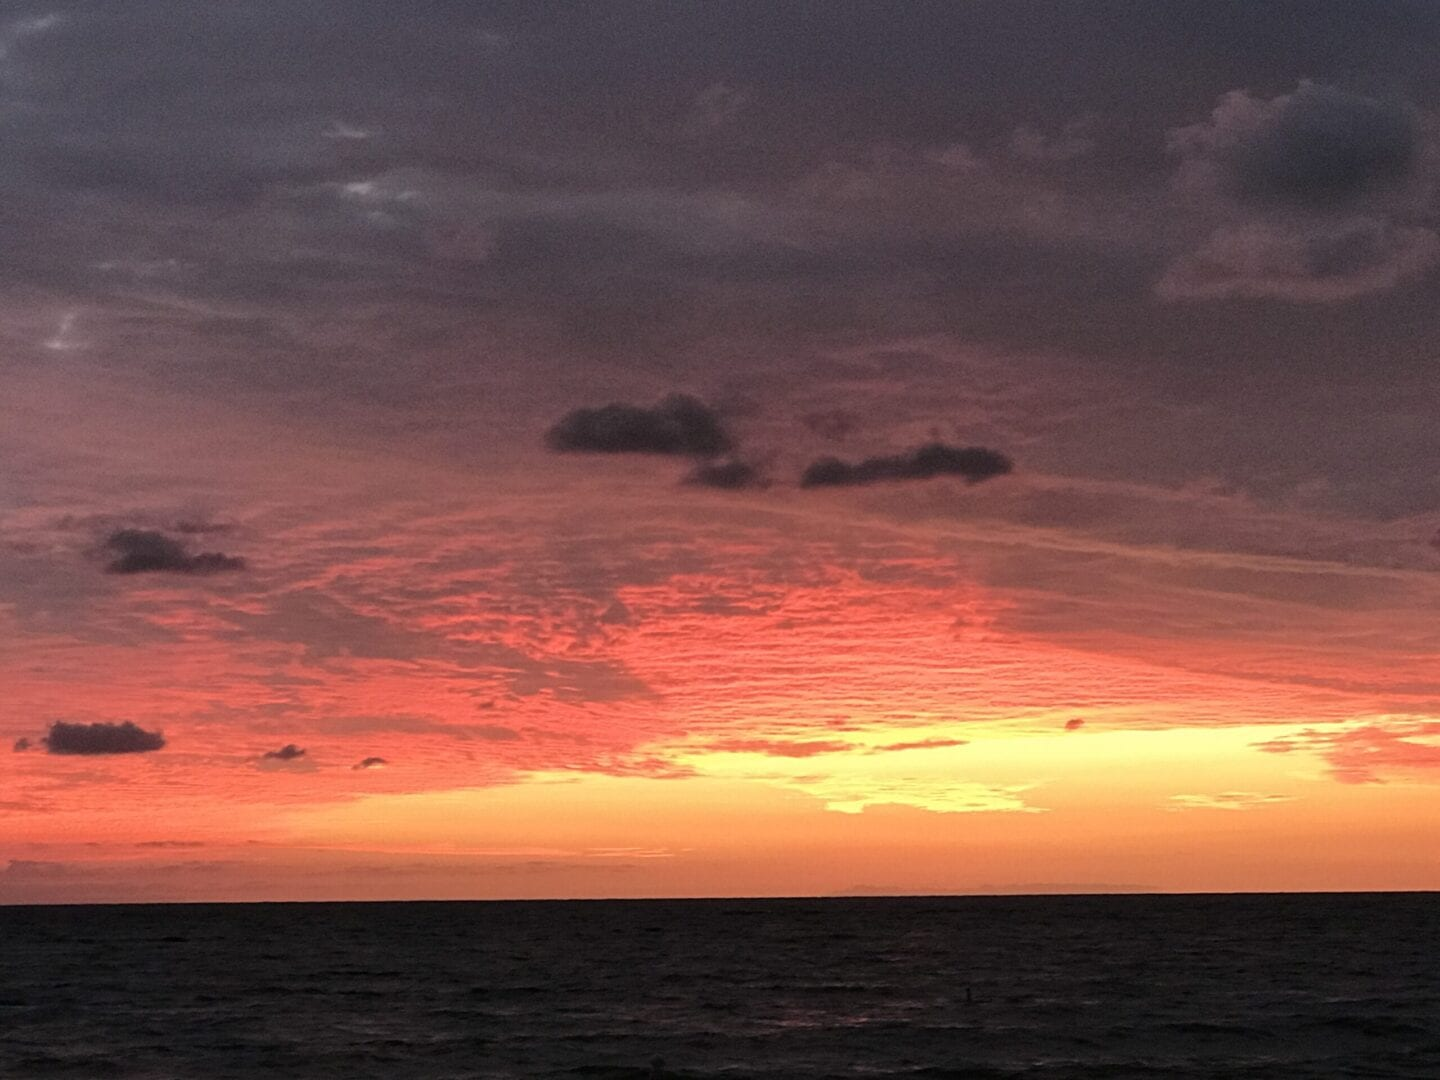 Orange and pink sunset skies in the sea